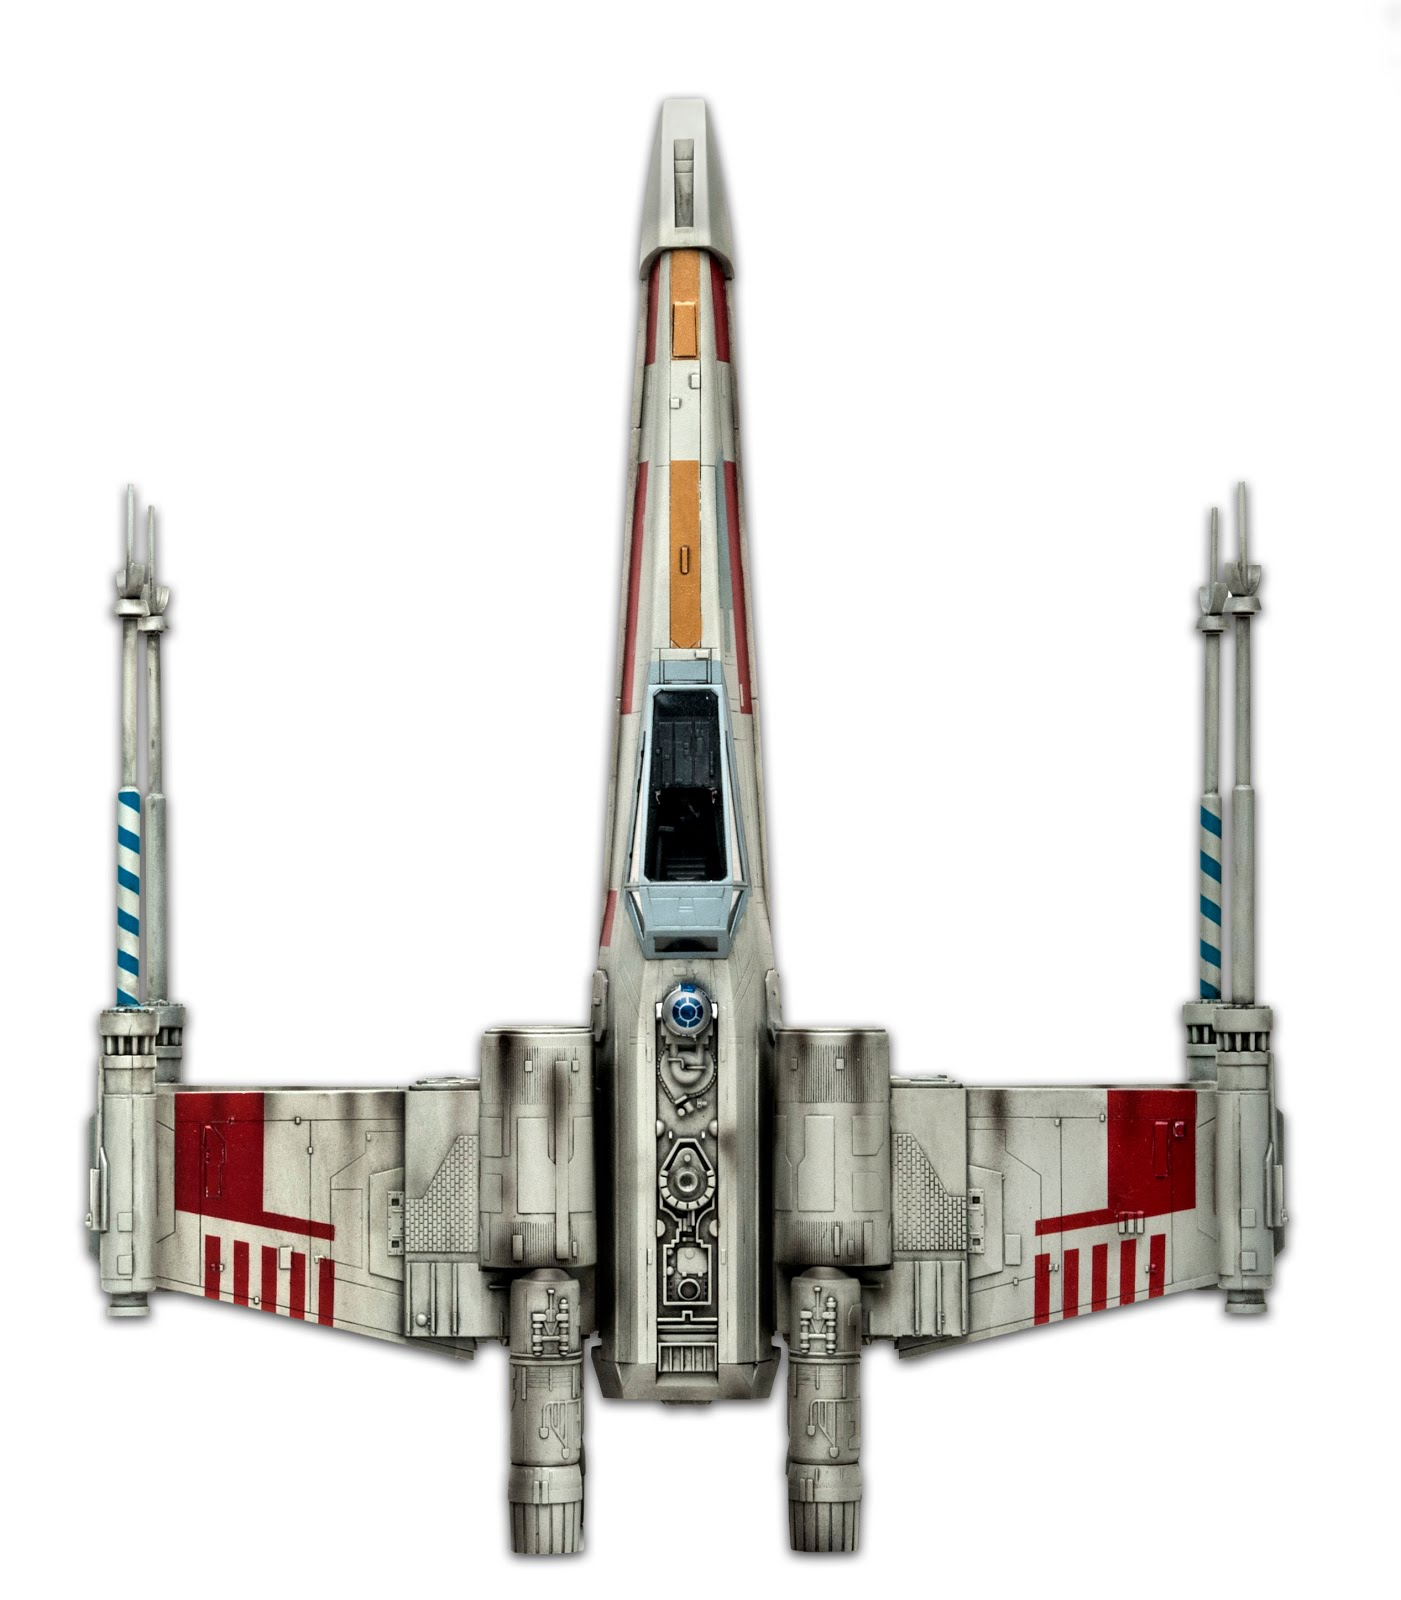 The Modelling News Revell S Master Series Star Wars Kit Preview Fine Moulds Or Just Old Finemolds